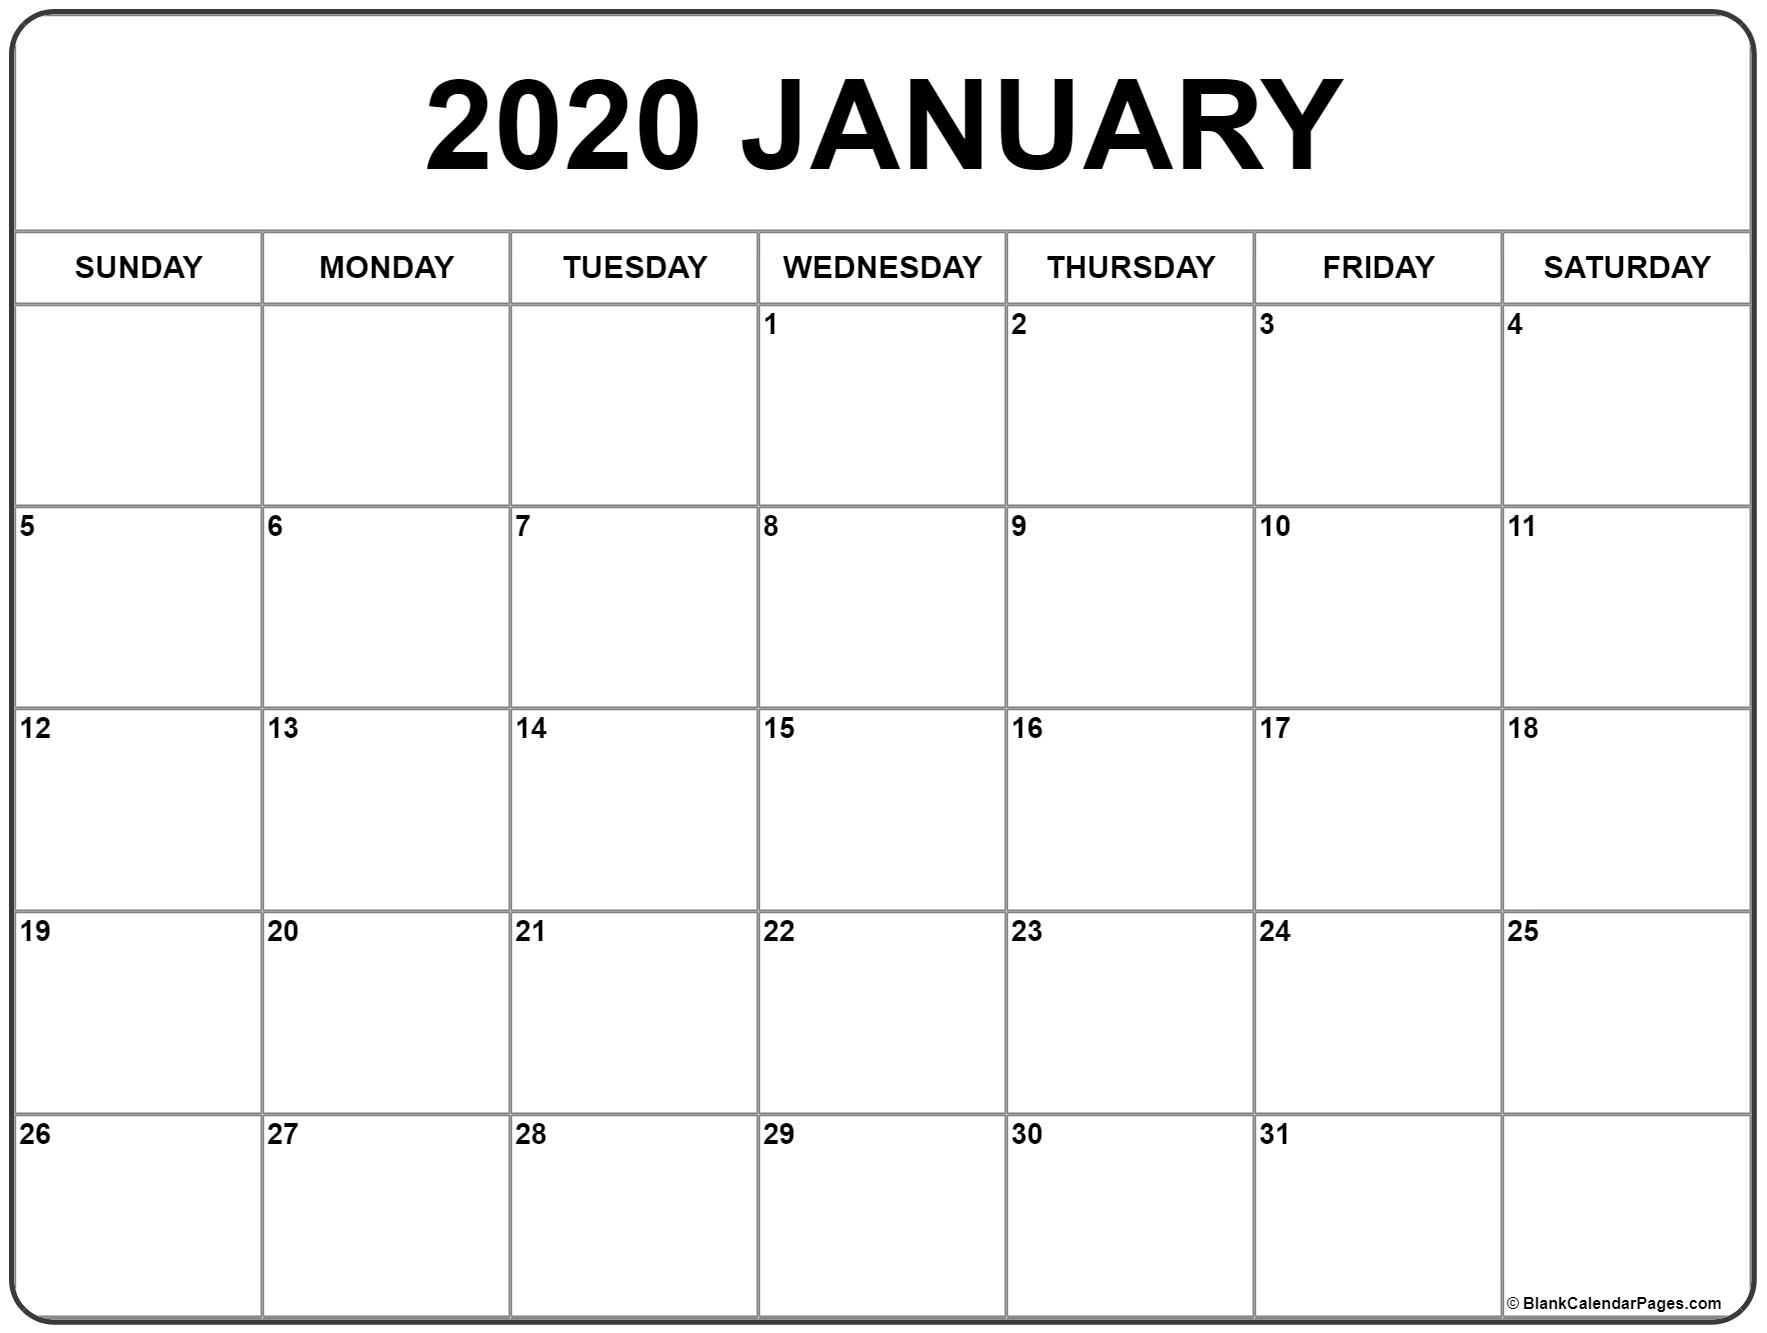 January Calendar 2020 Template - Wpa.wpart.co